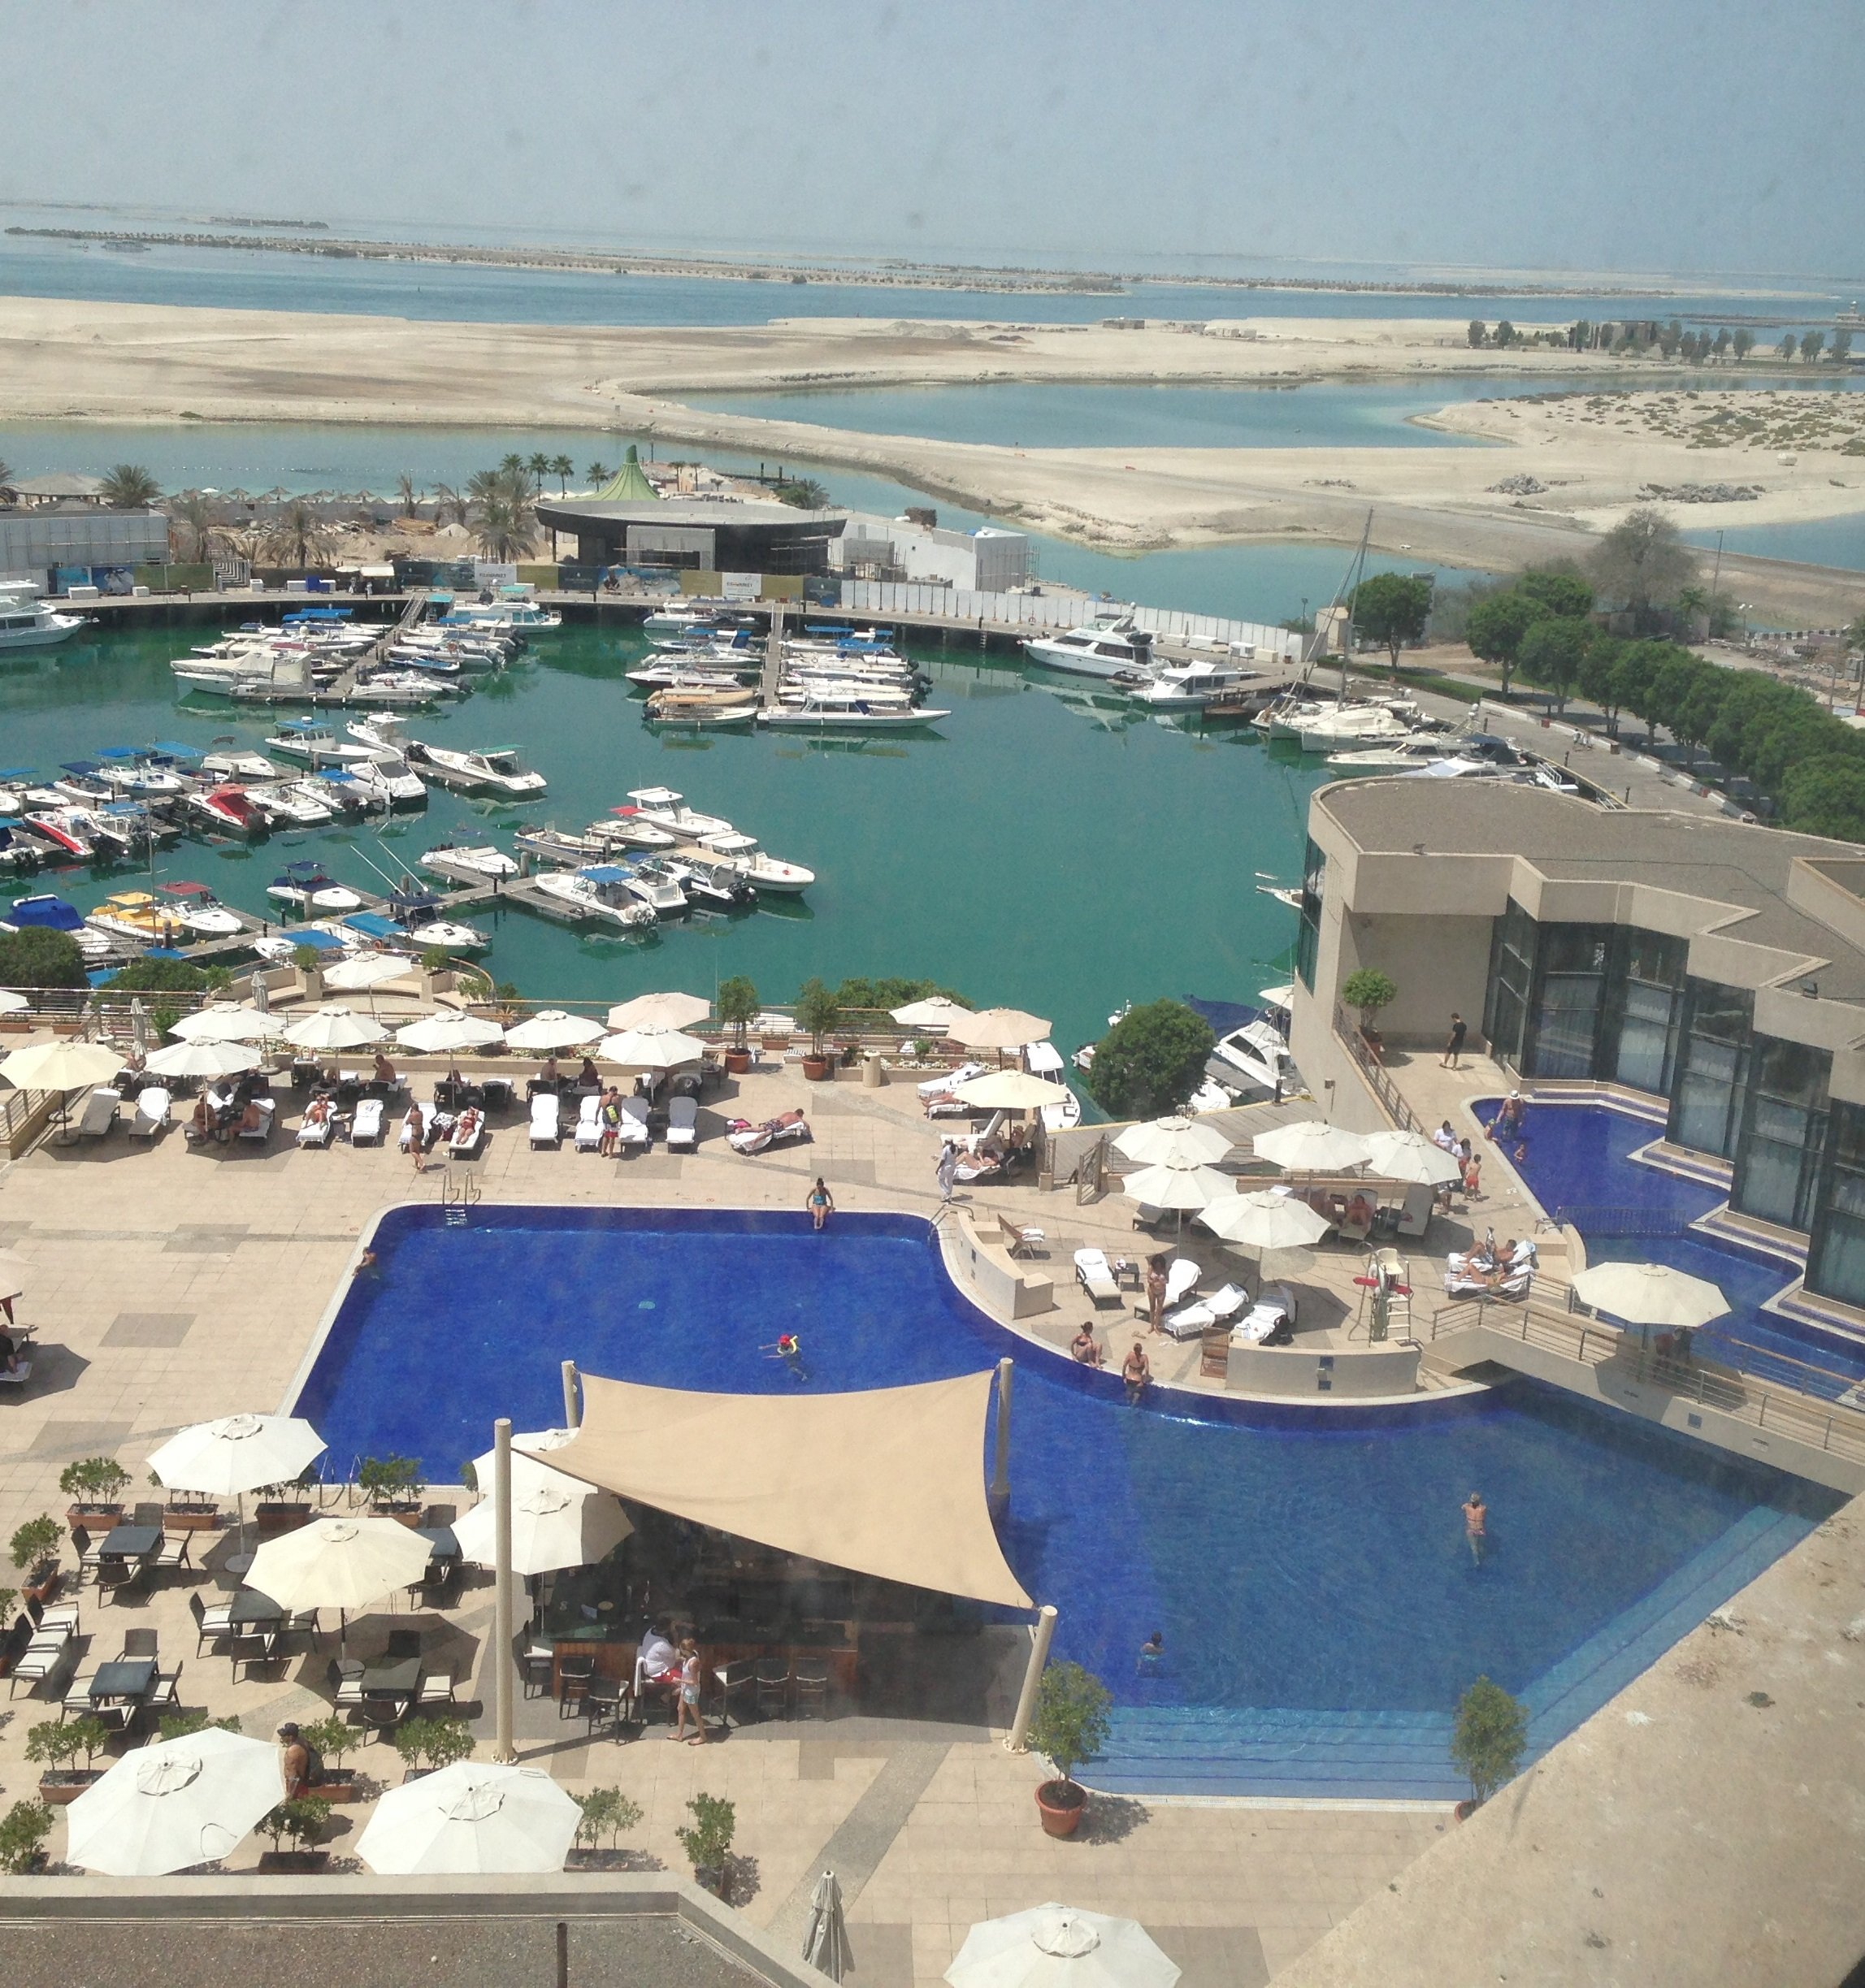 Room with a view: Abu Dhabi